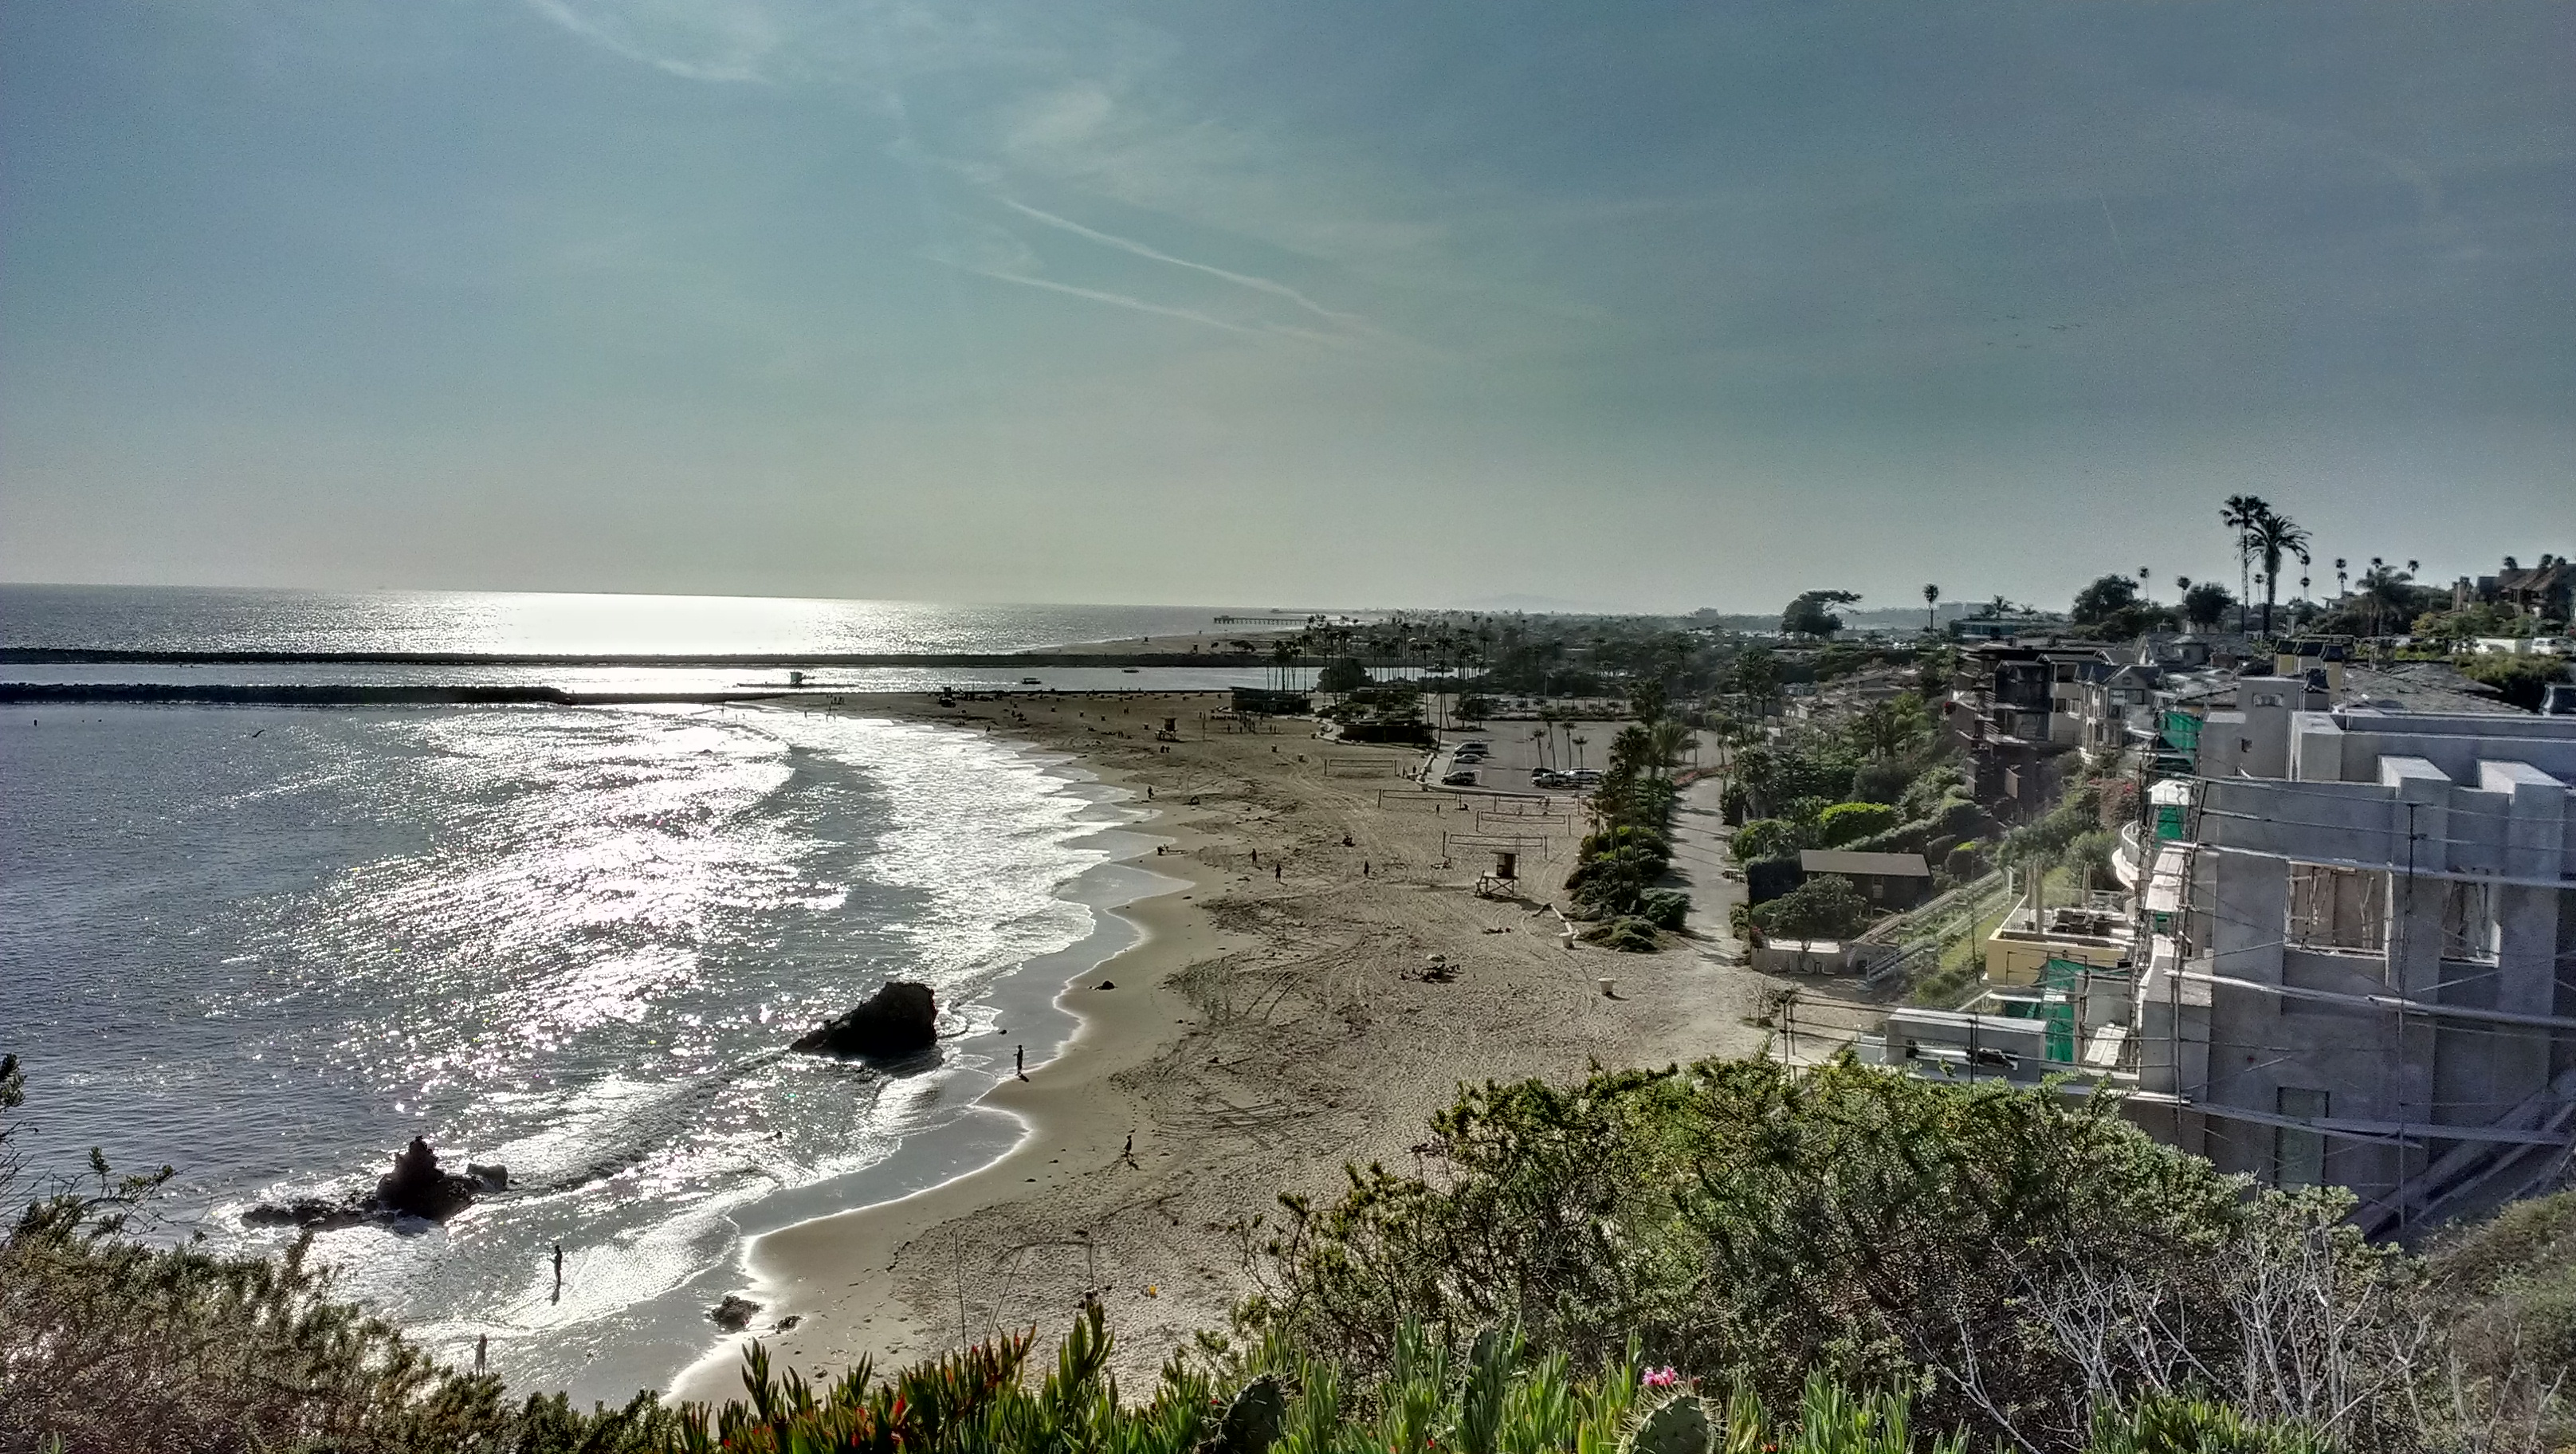 HDR image of Newport Beach